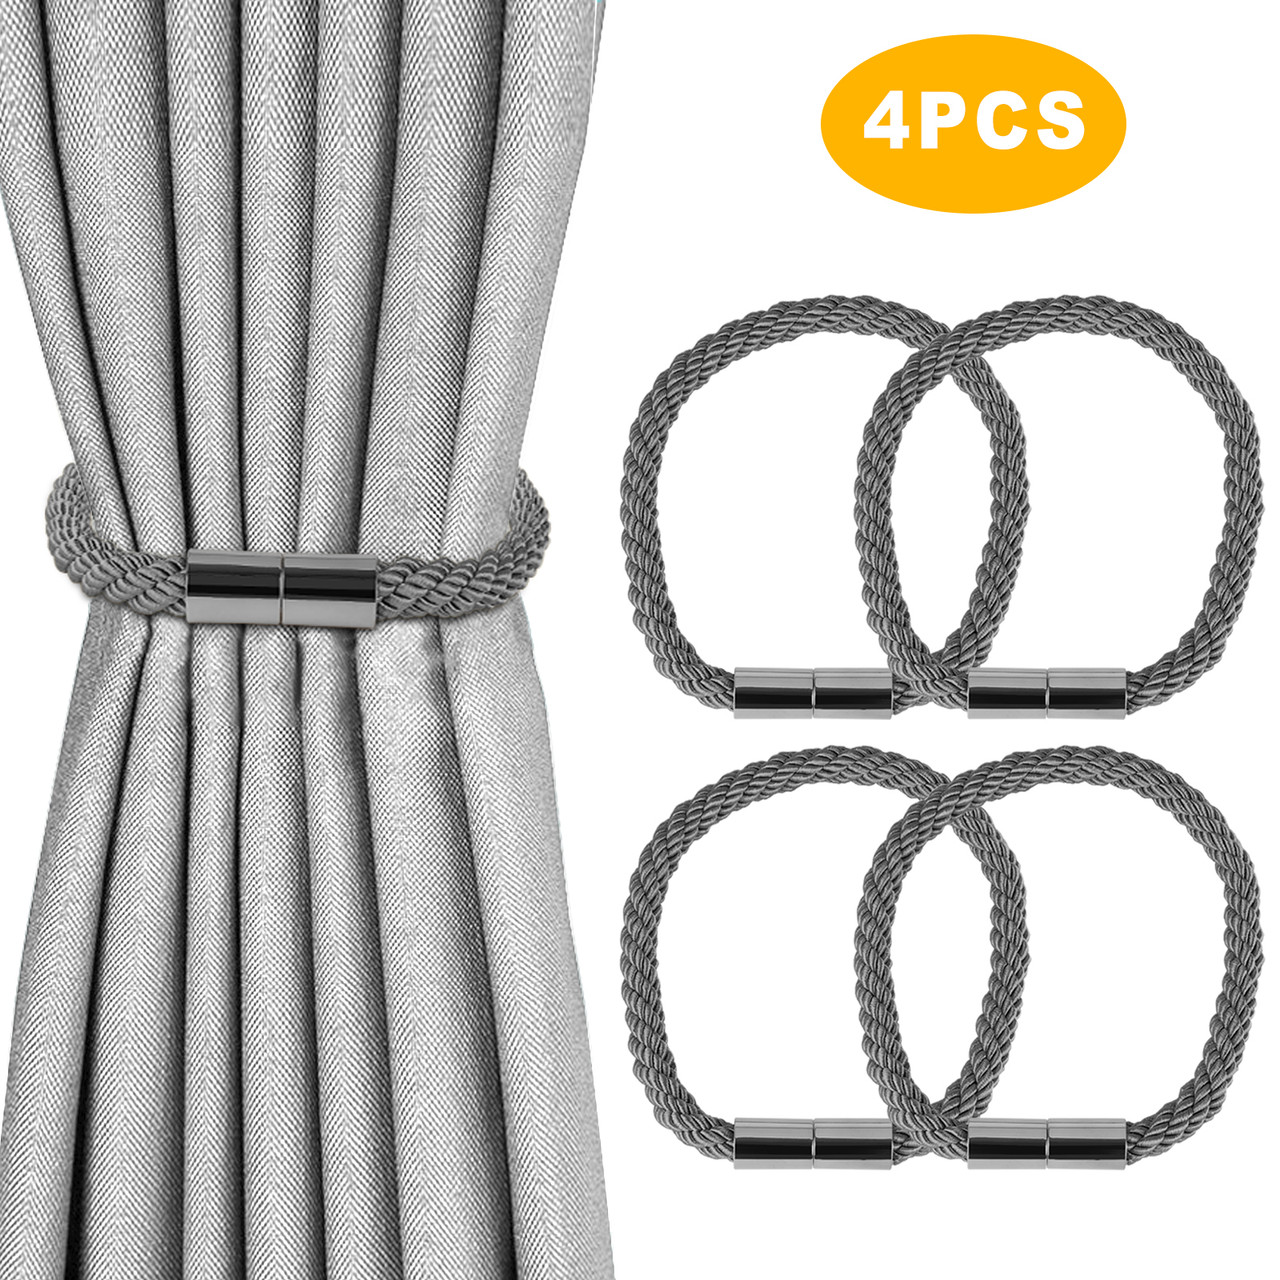 https wowparts com magnetic curtain tiebacks decorative curtain rope holdbacks strong magnetic draperies tiebacks window curtain buckle holders perfect for living room bedroom dinning room office gray 4pcs